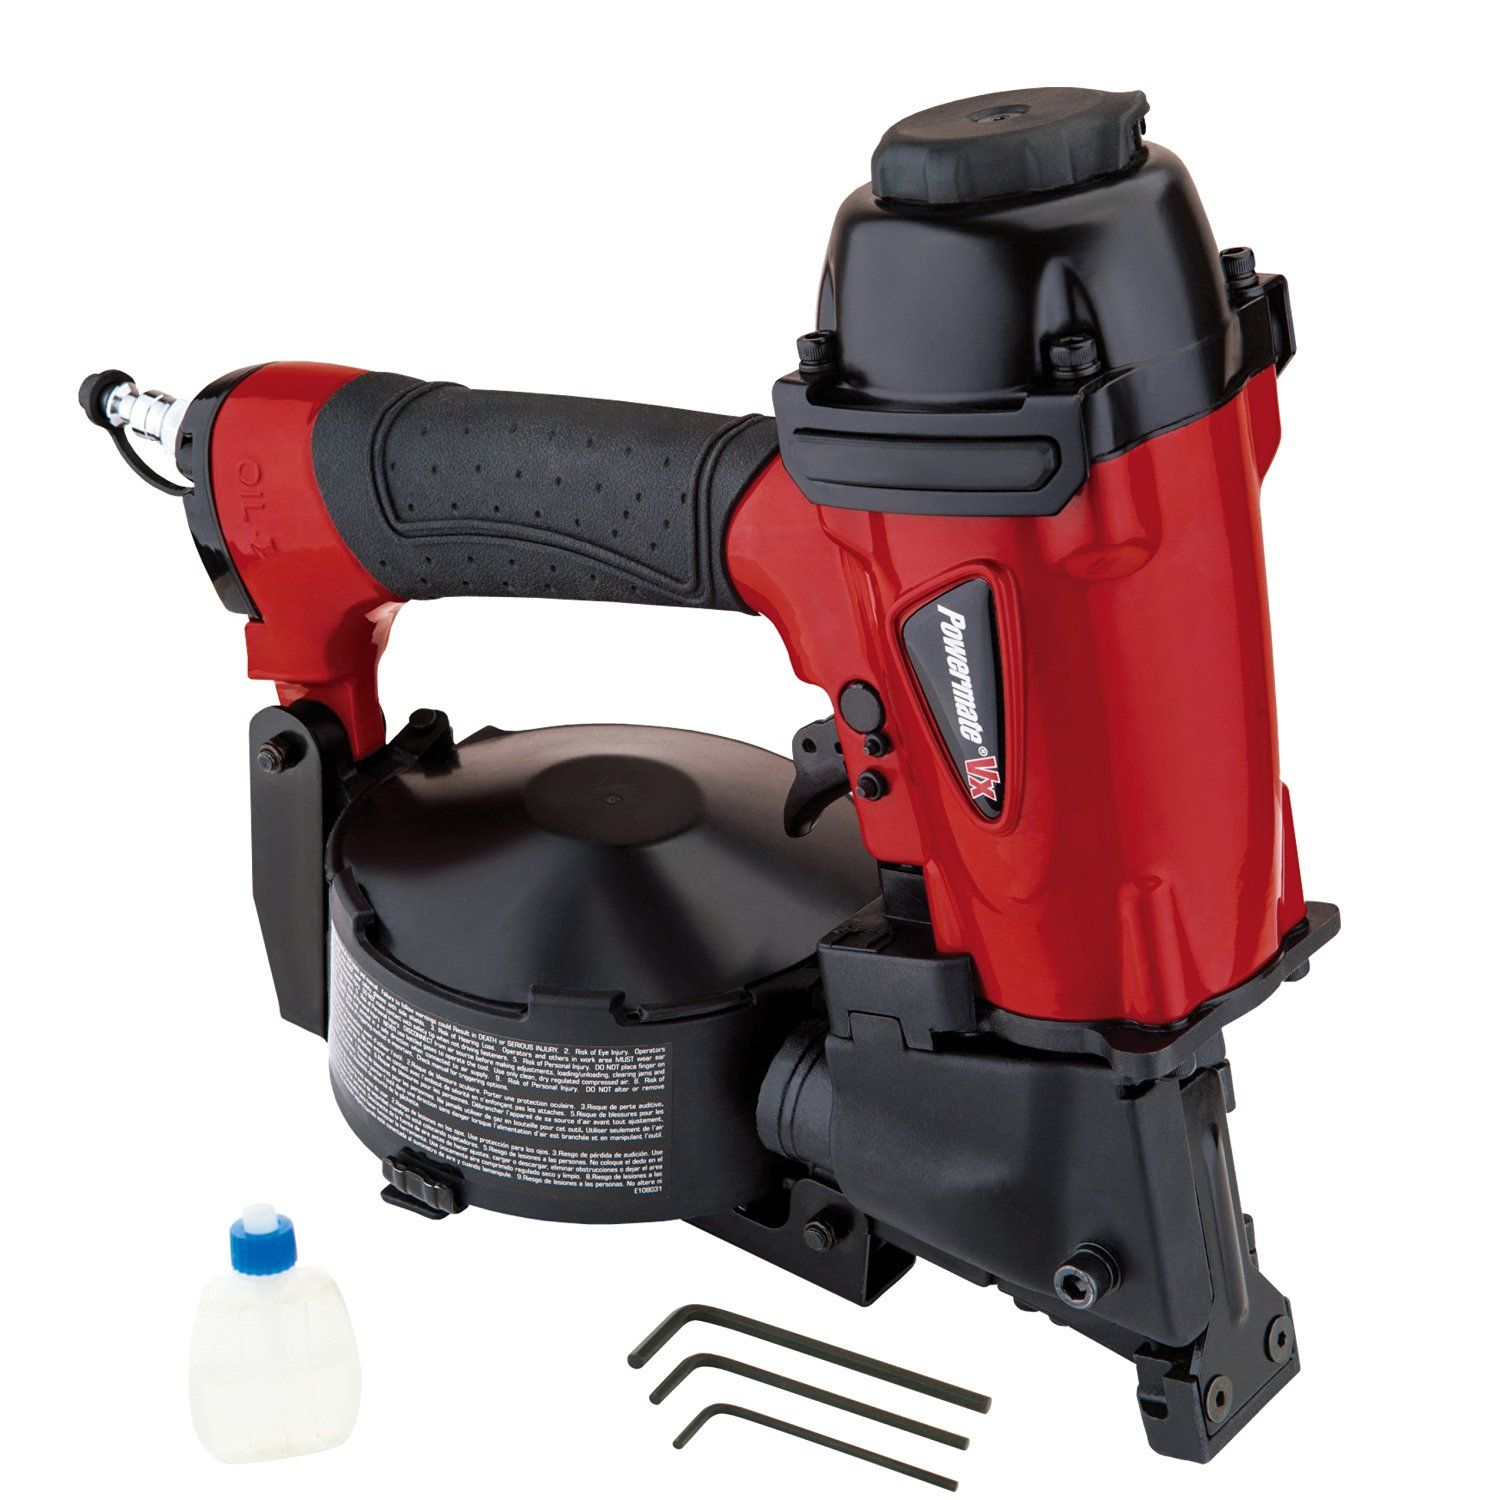 Powermate VX CRN175P Coil Roofing Nailer, Red >>> To view